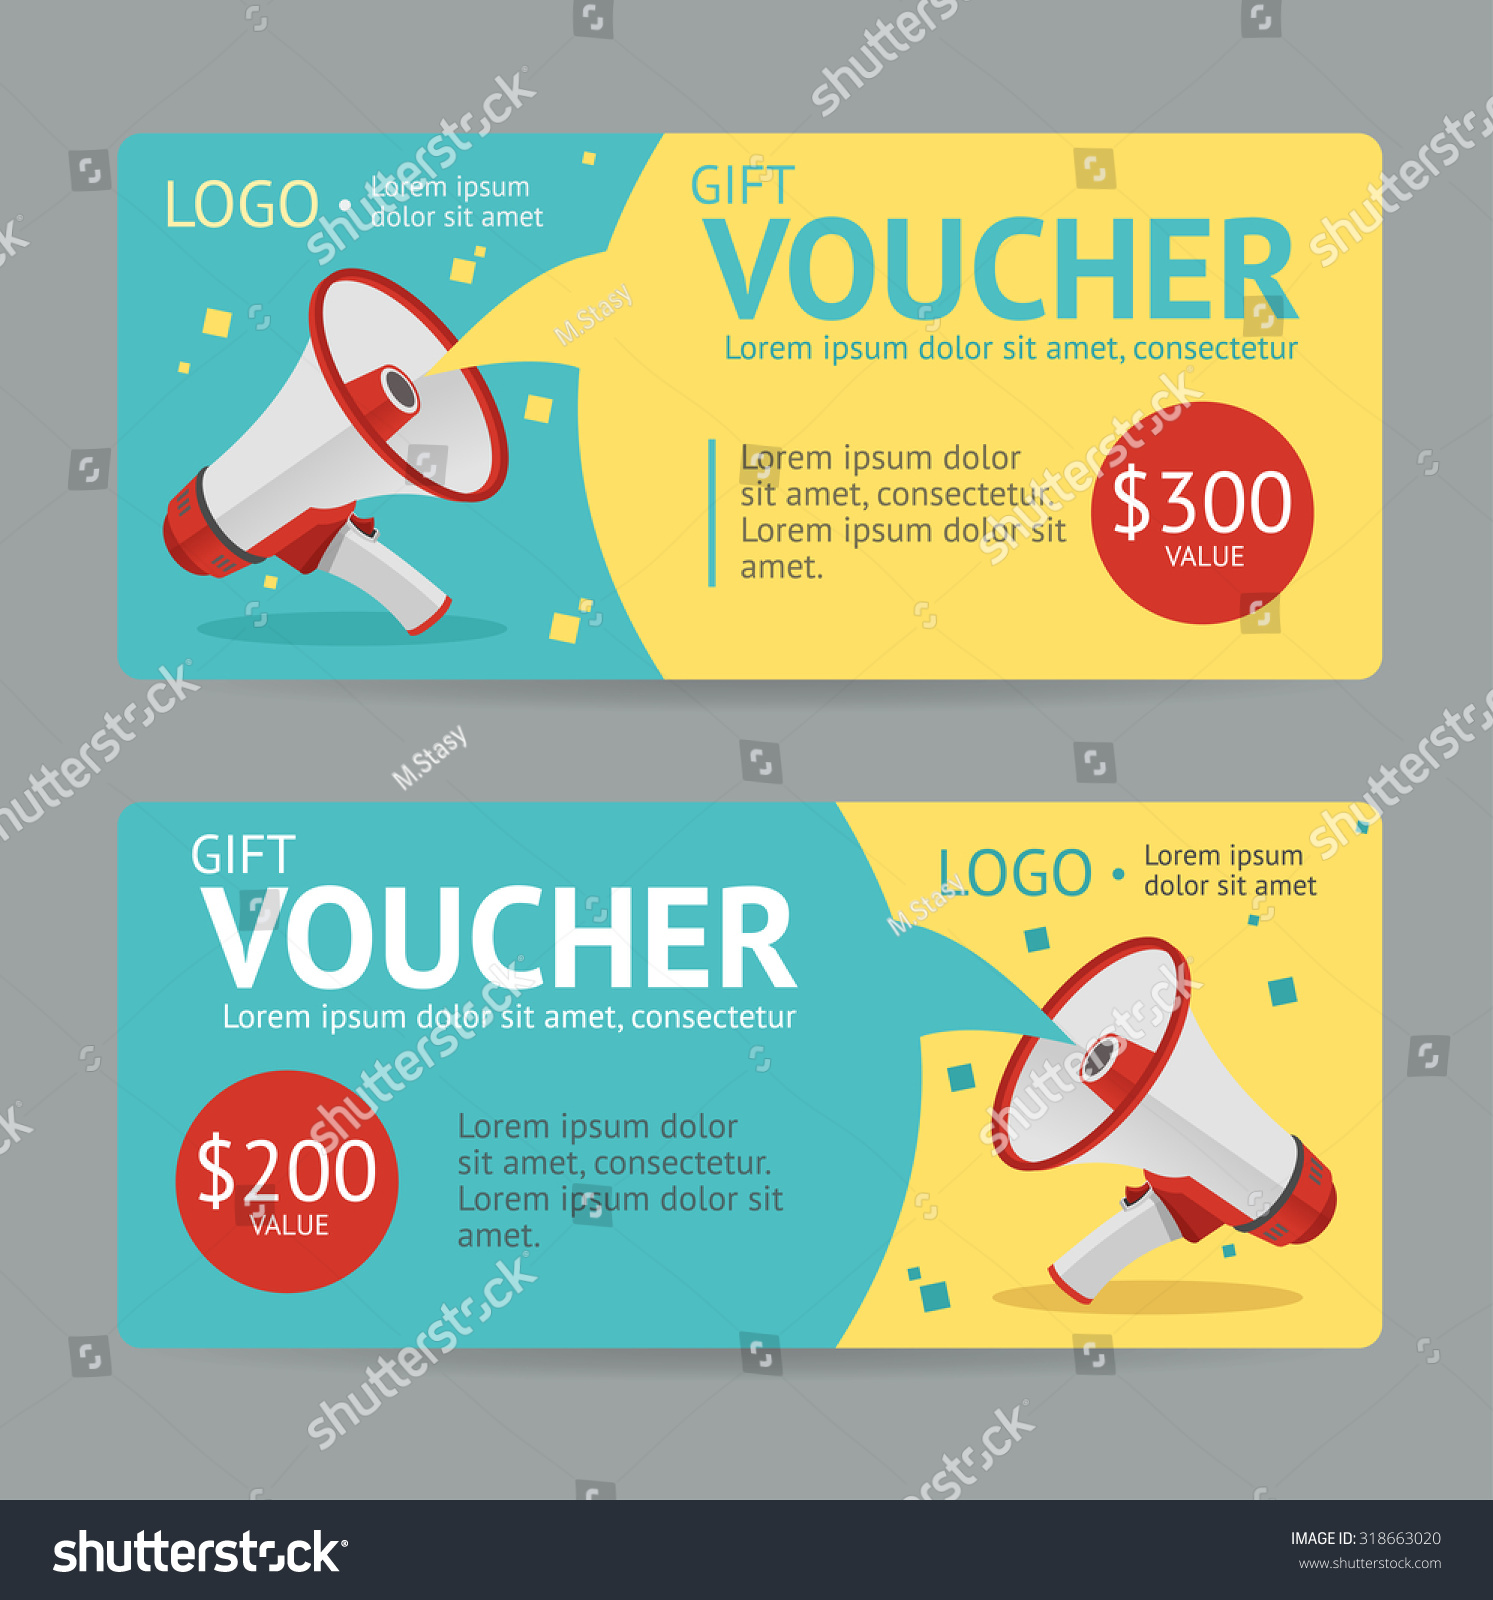 Gift Voucher Template Announcement Winning Vector Stock Vector ...